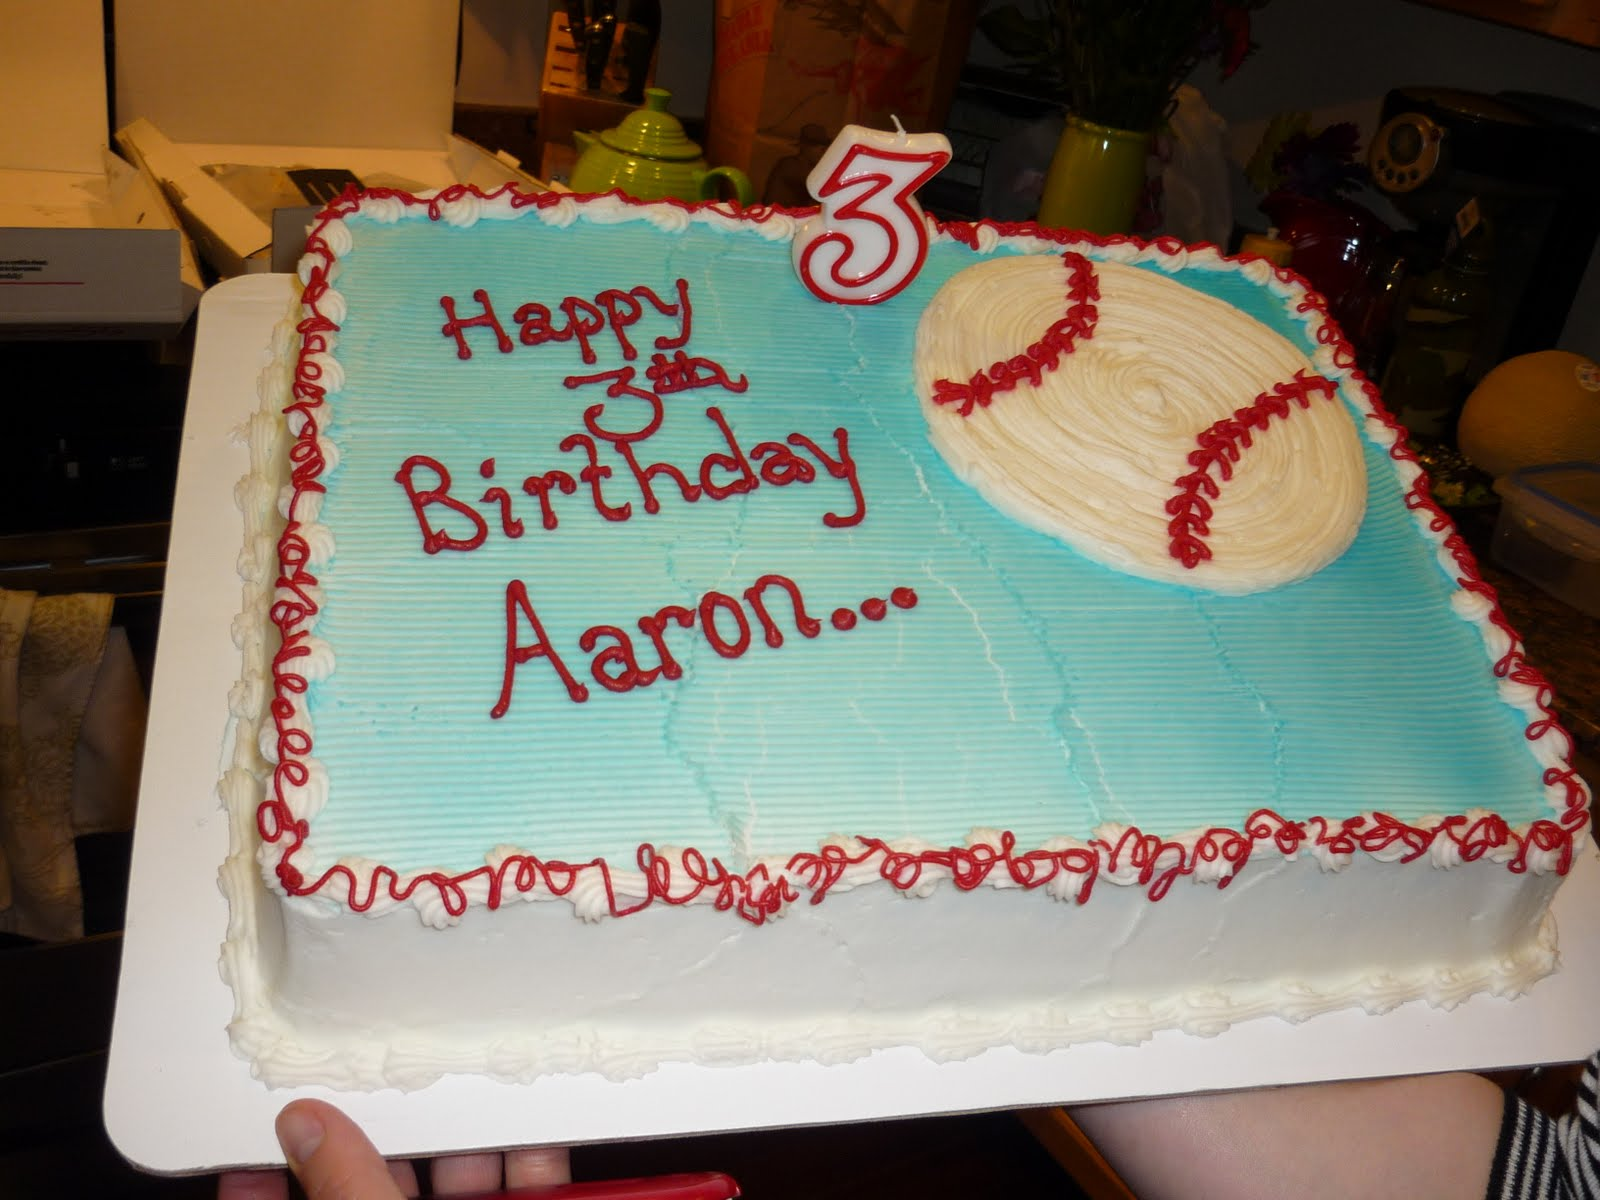 Update From The Coenens Happy 3rd Birthday Aaron